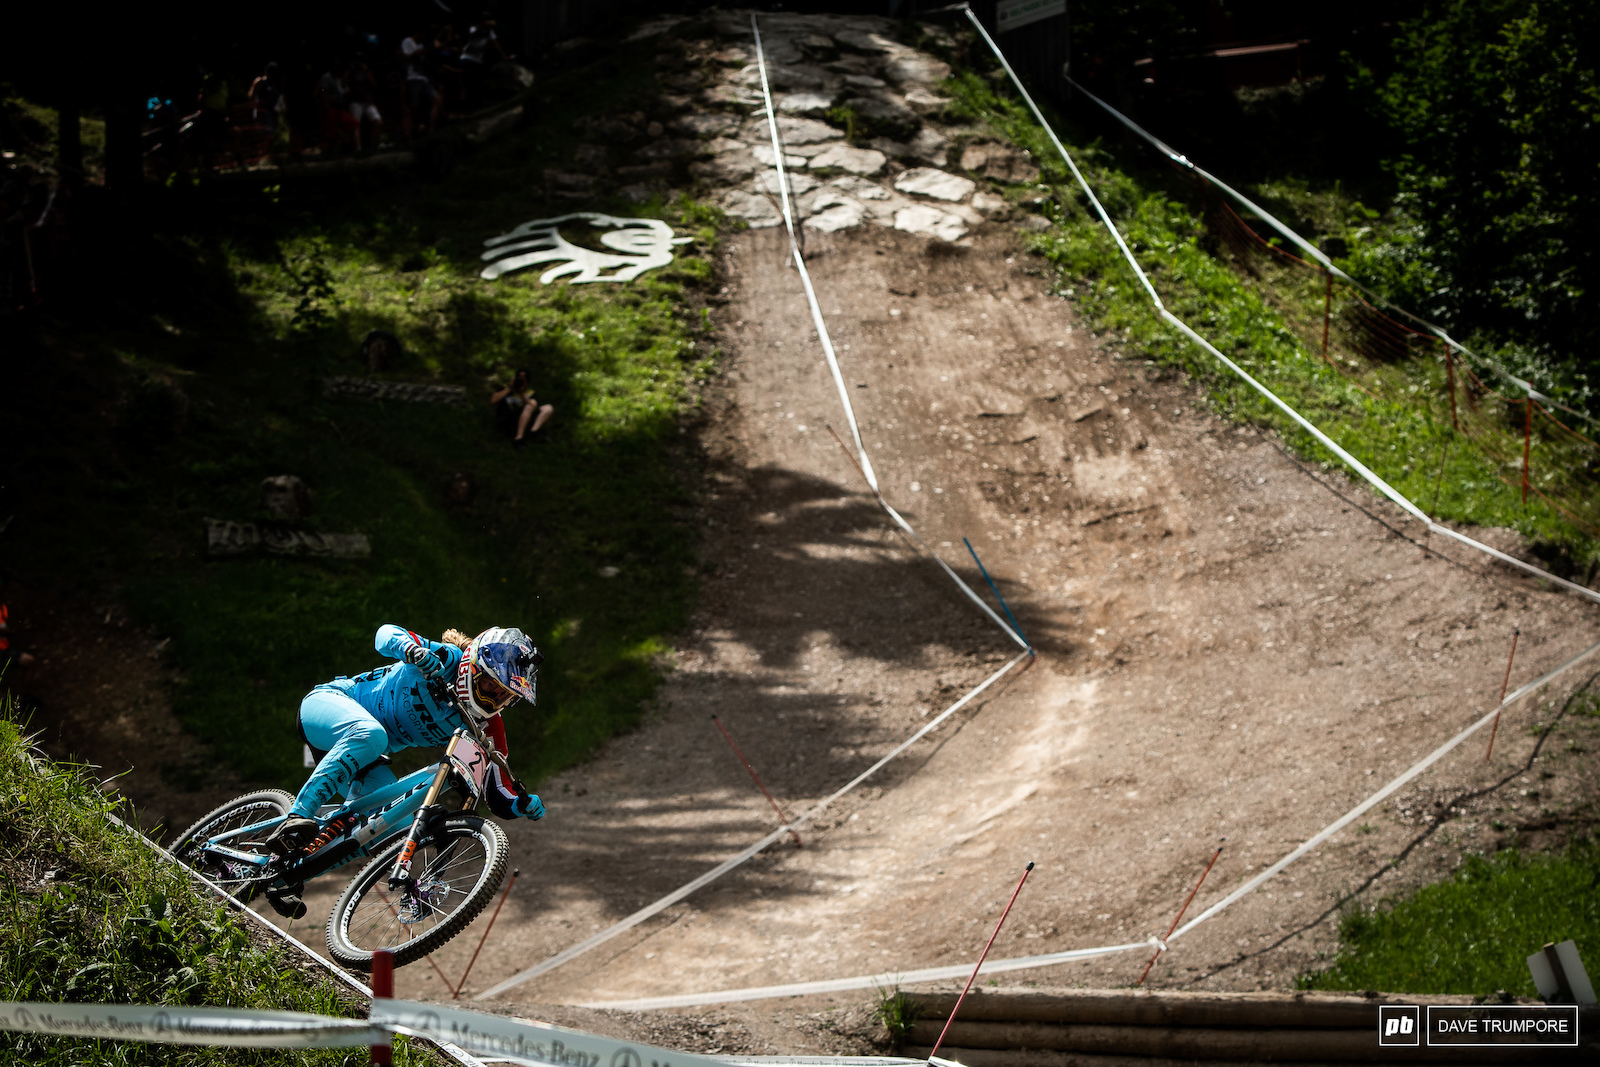 Green through all the splits by a massive margin Rachel Atherton set the fastest time early in the race and held it all the way to the end.